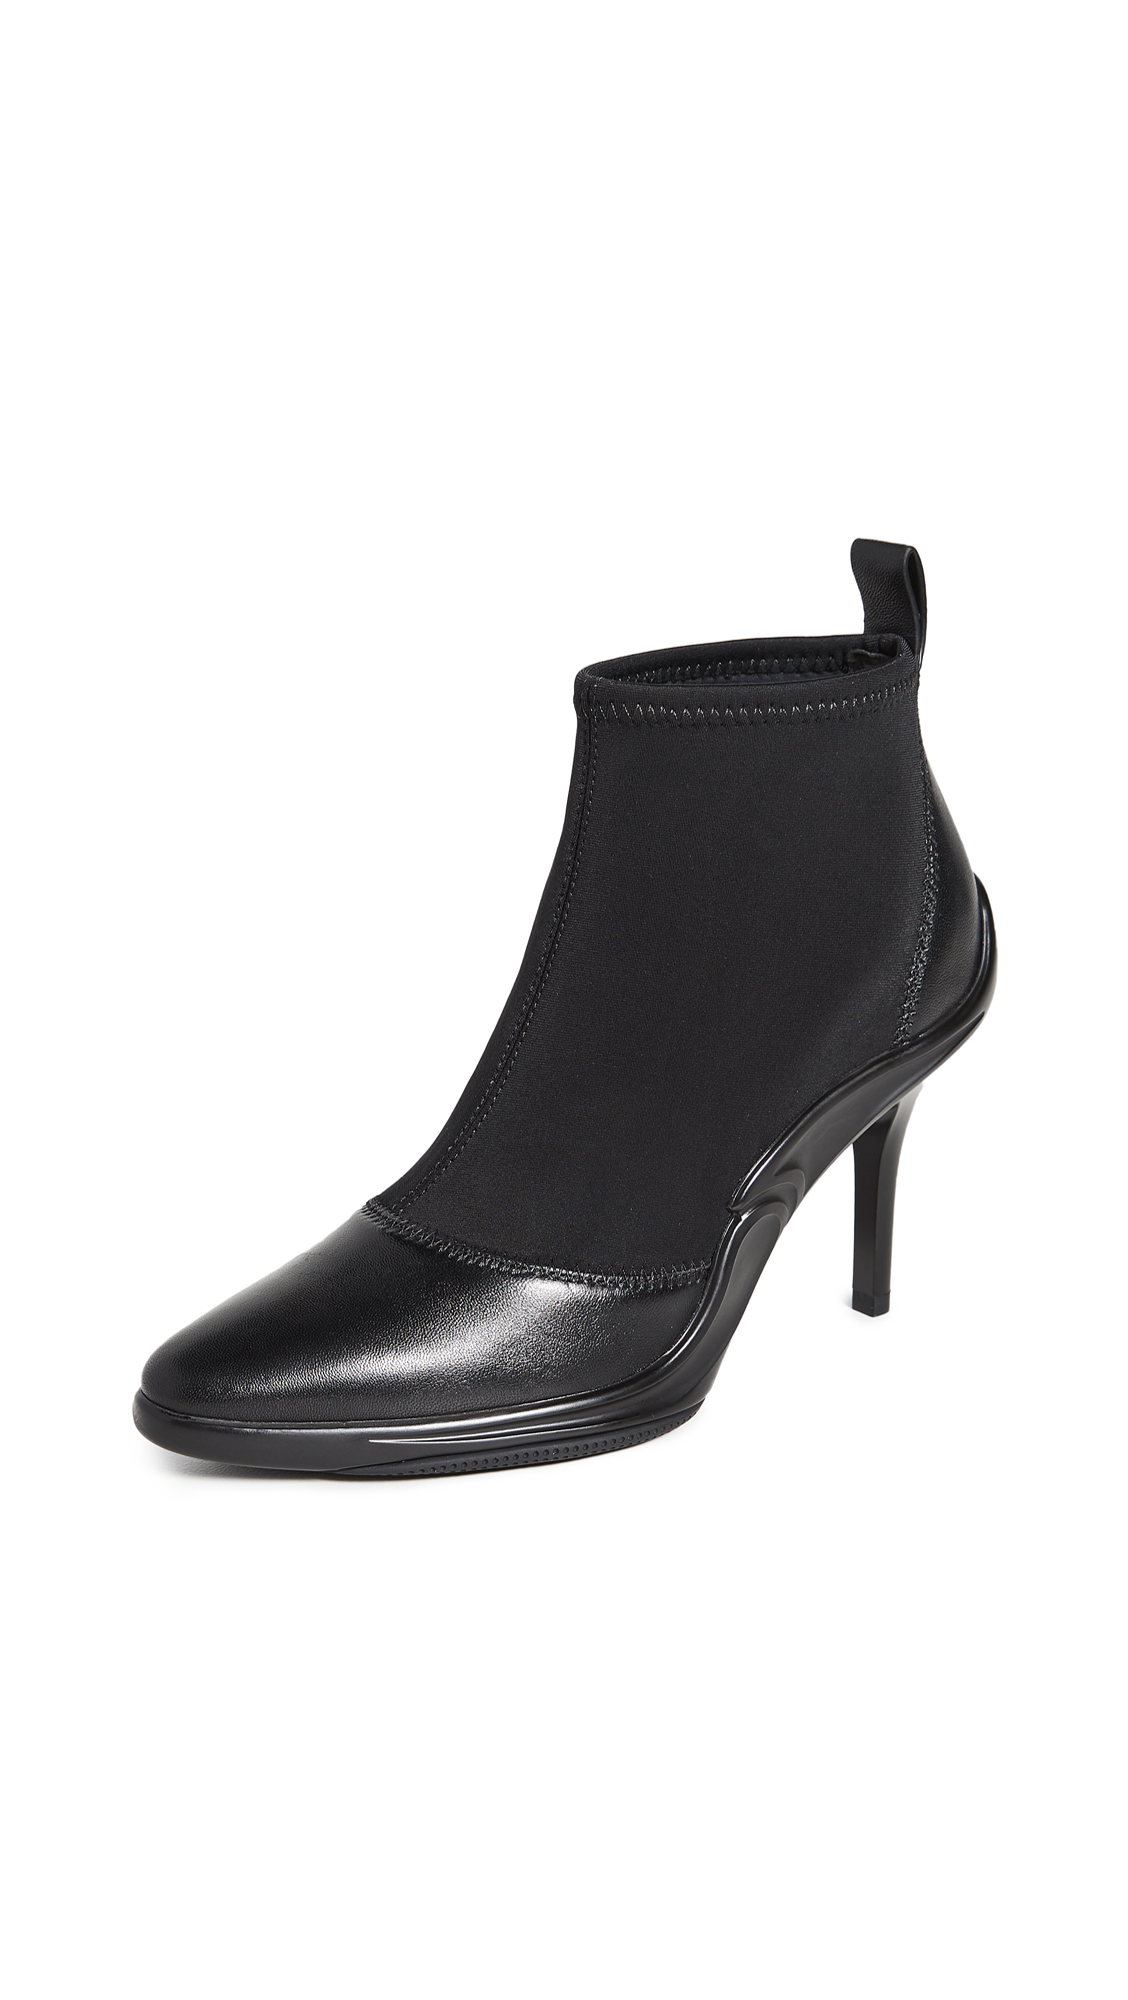 Stella Luna Hybrid Heel Booties - 60% Off Sale